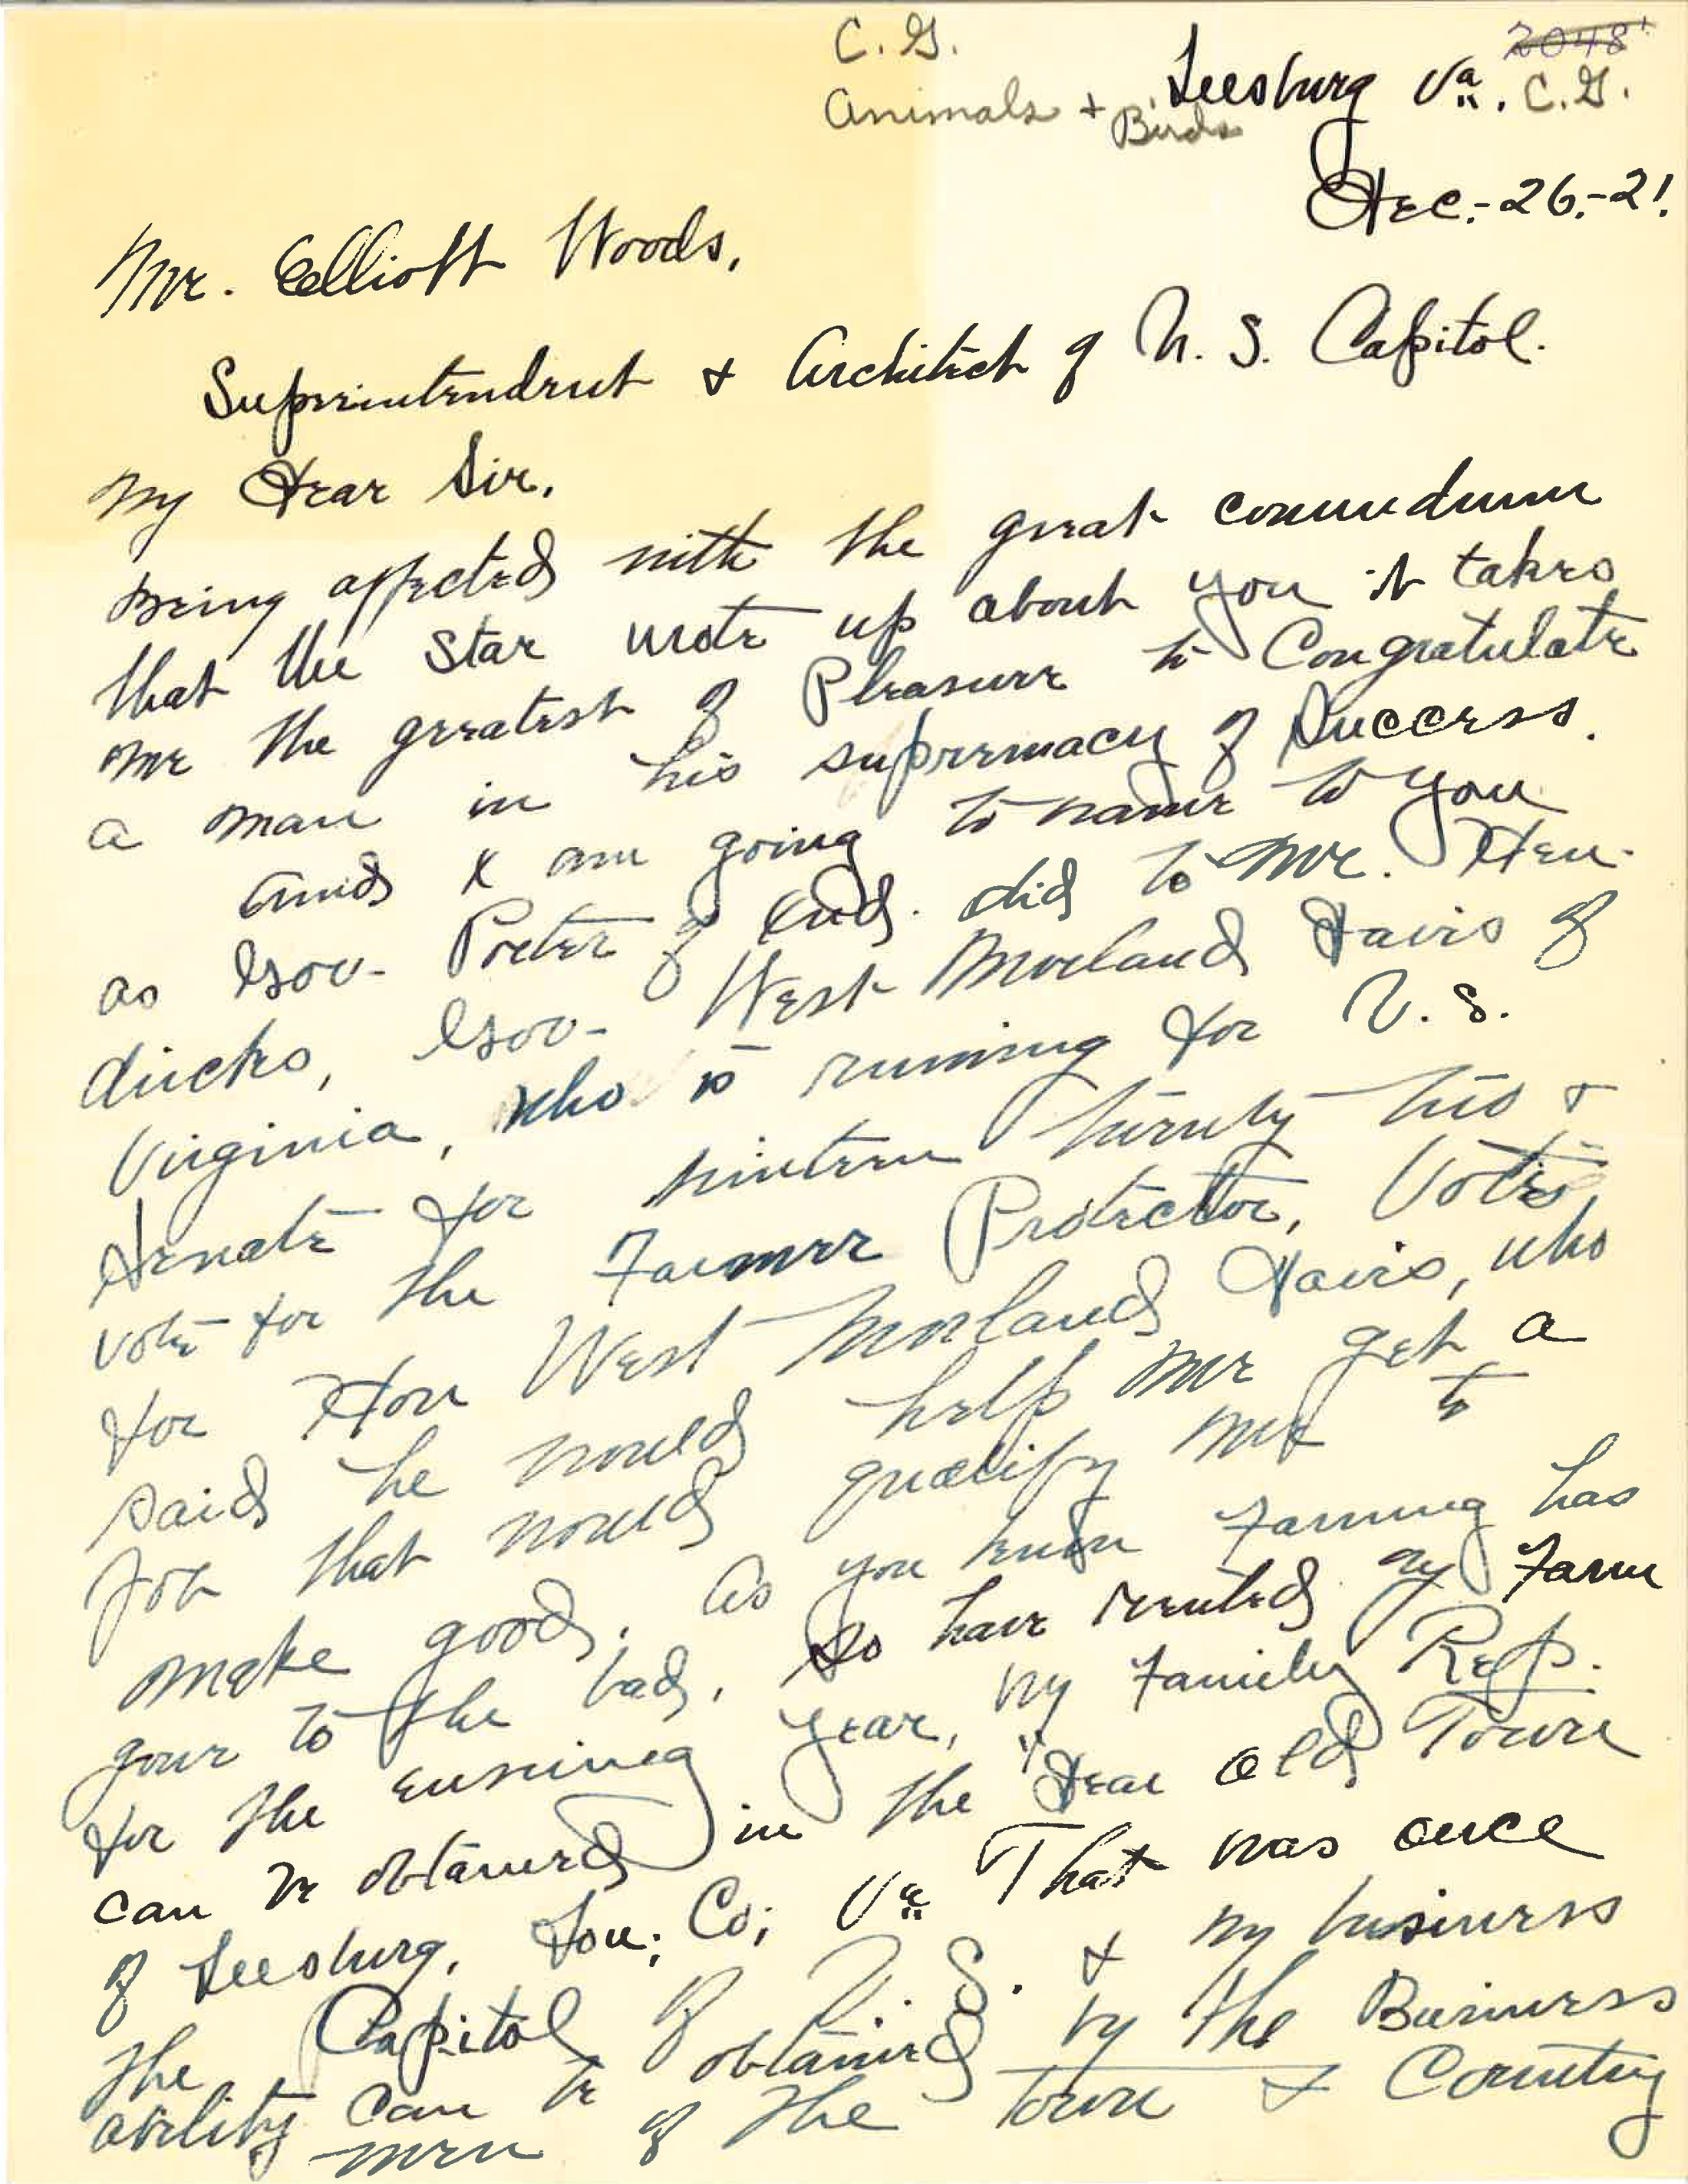 Letter from J.S. Spring to Elliot Woods - December 26, 1921